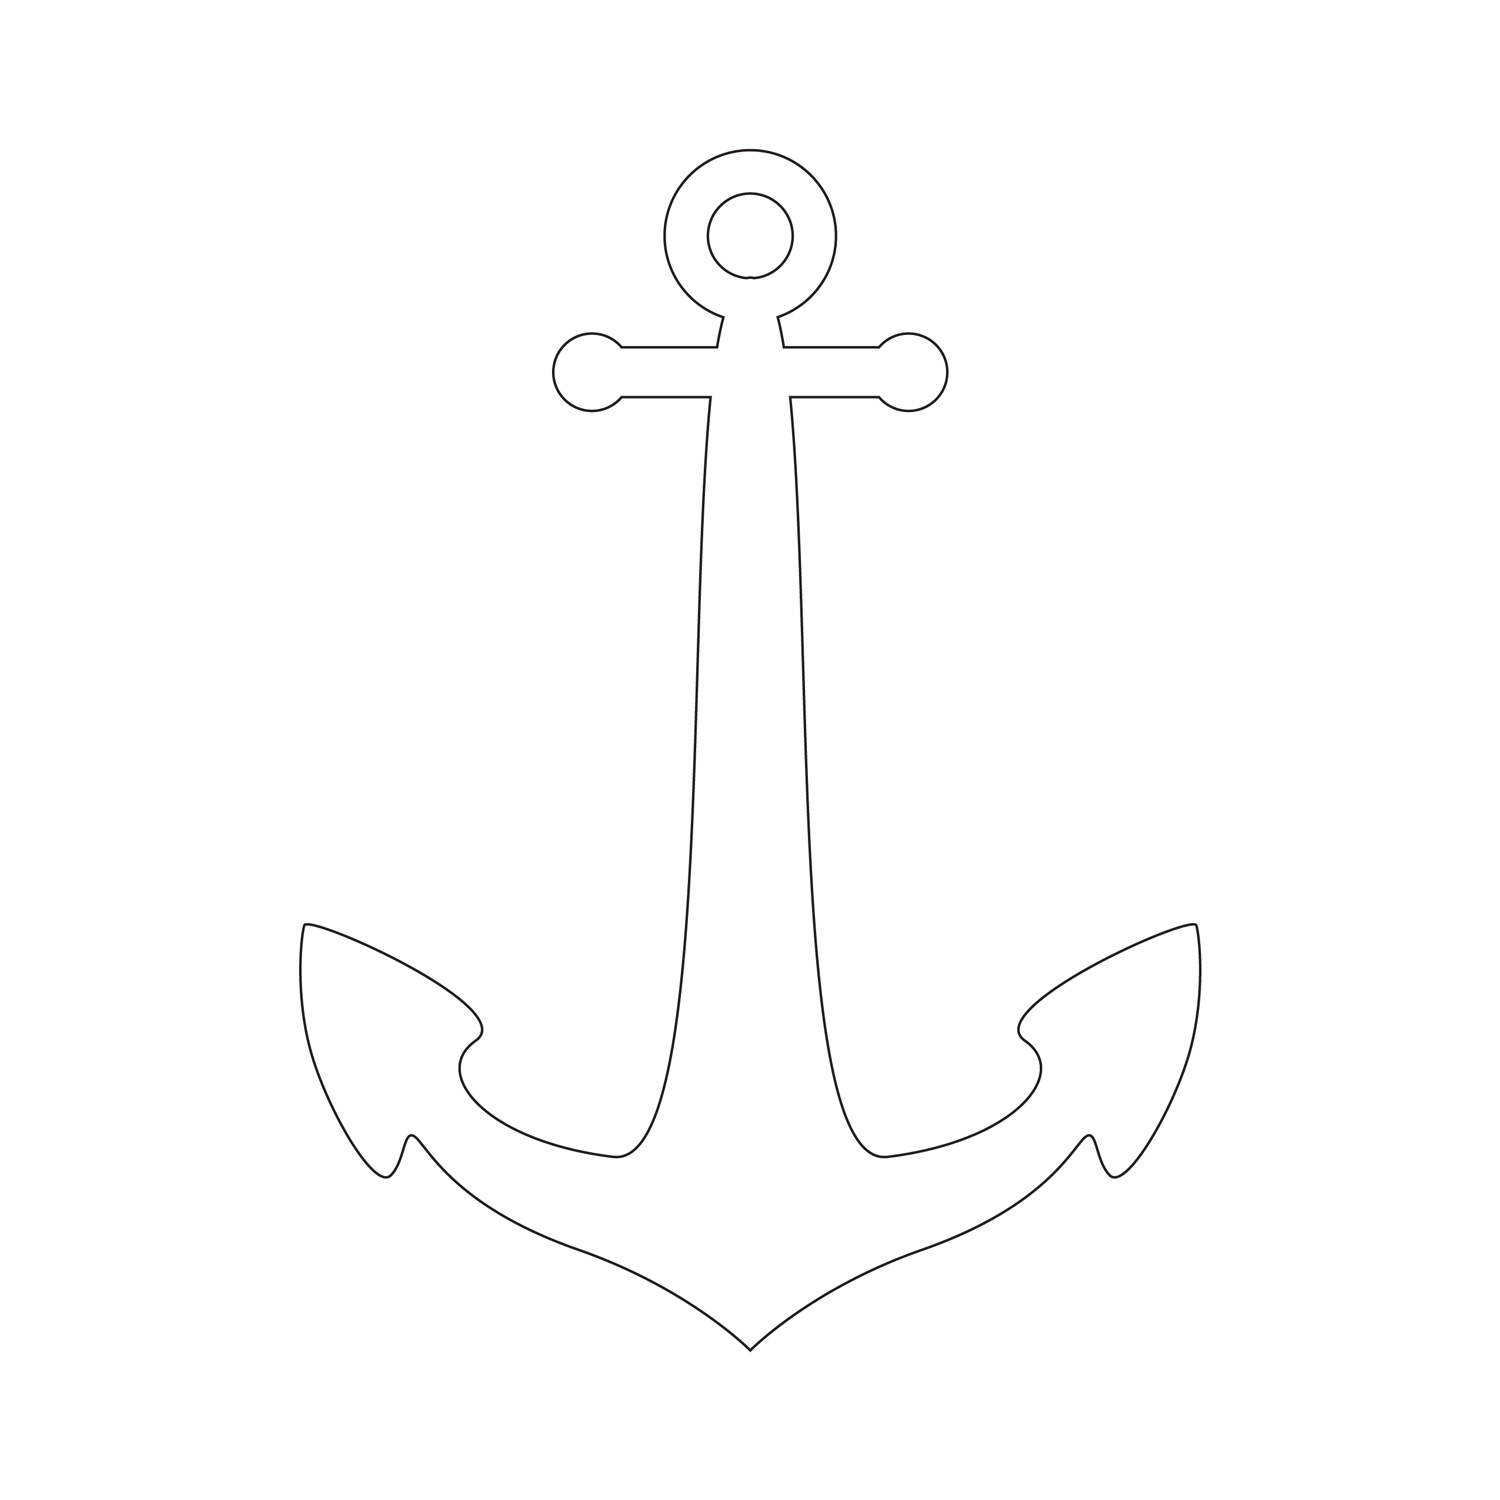 Geeky image with regard to anchor stencil printable